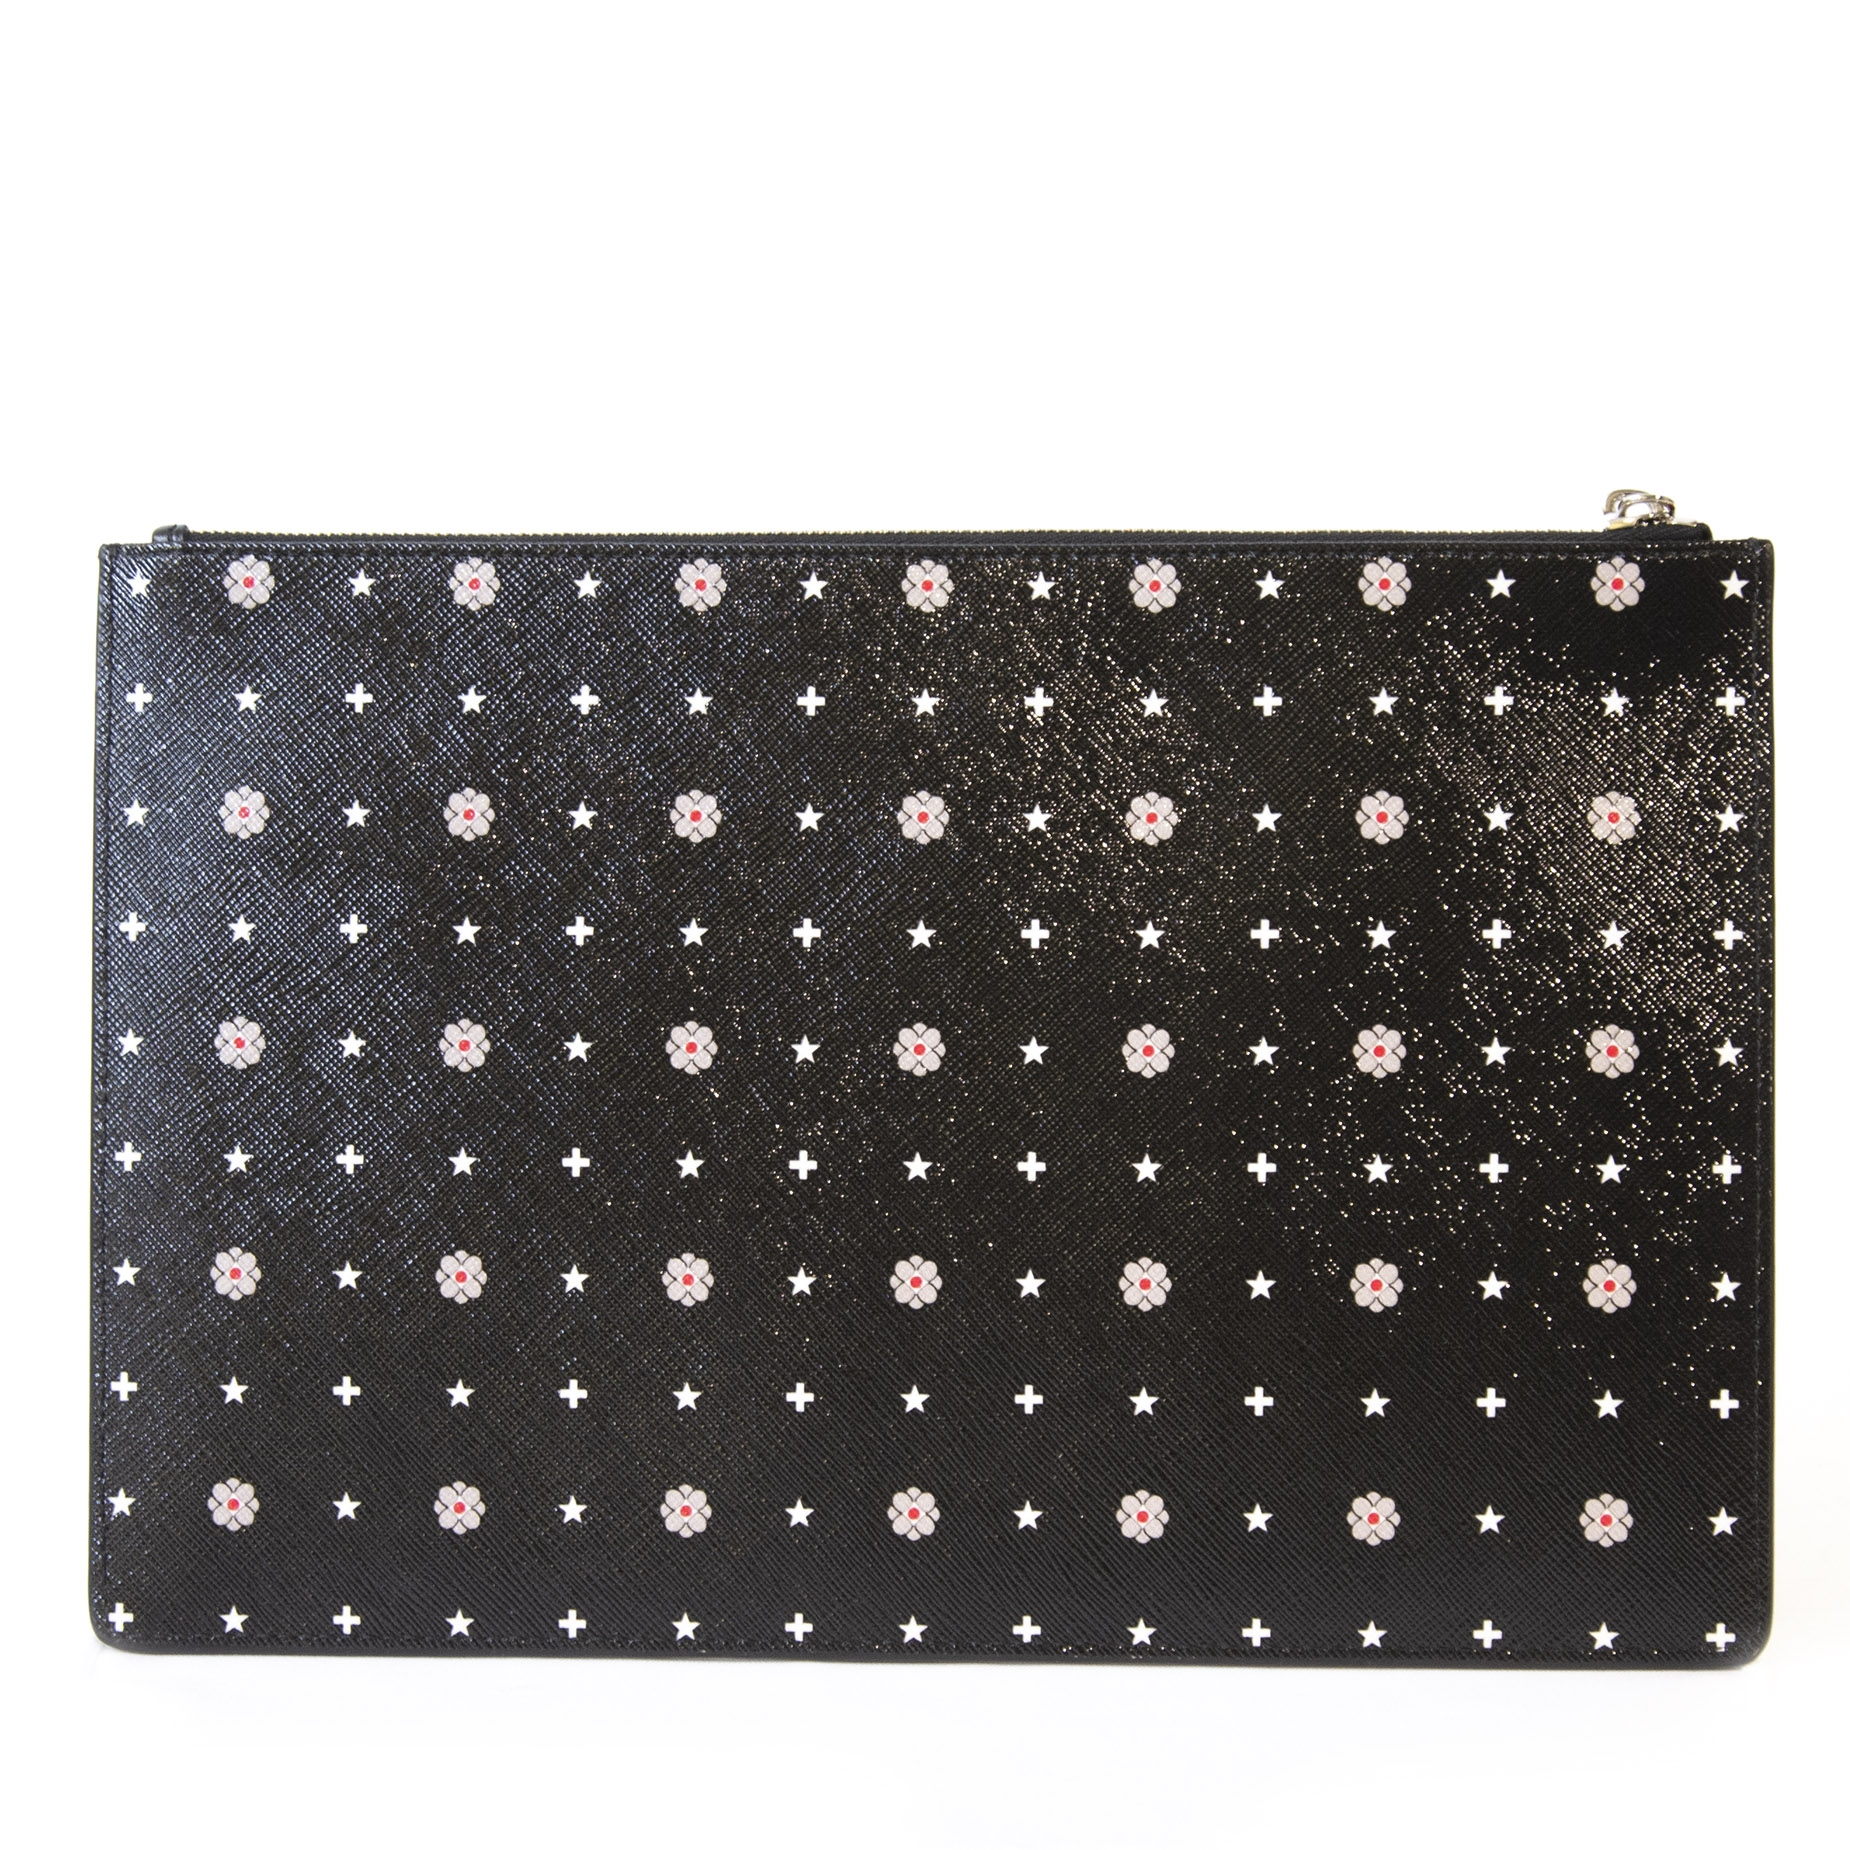 Authentieke tweedehands vintage Givenchy Floral Pouch  koop online webshop LabelLOV